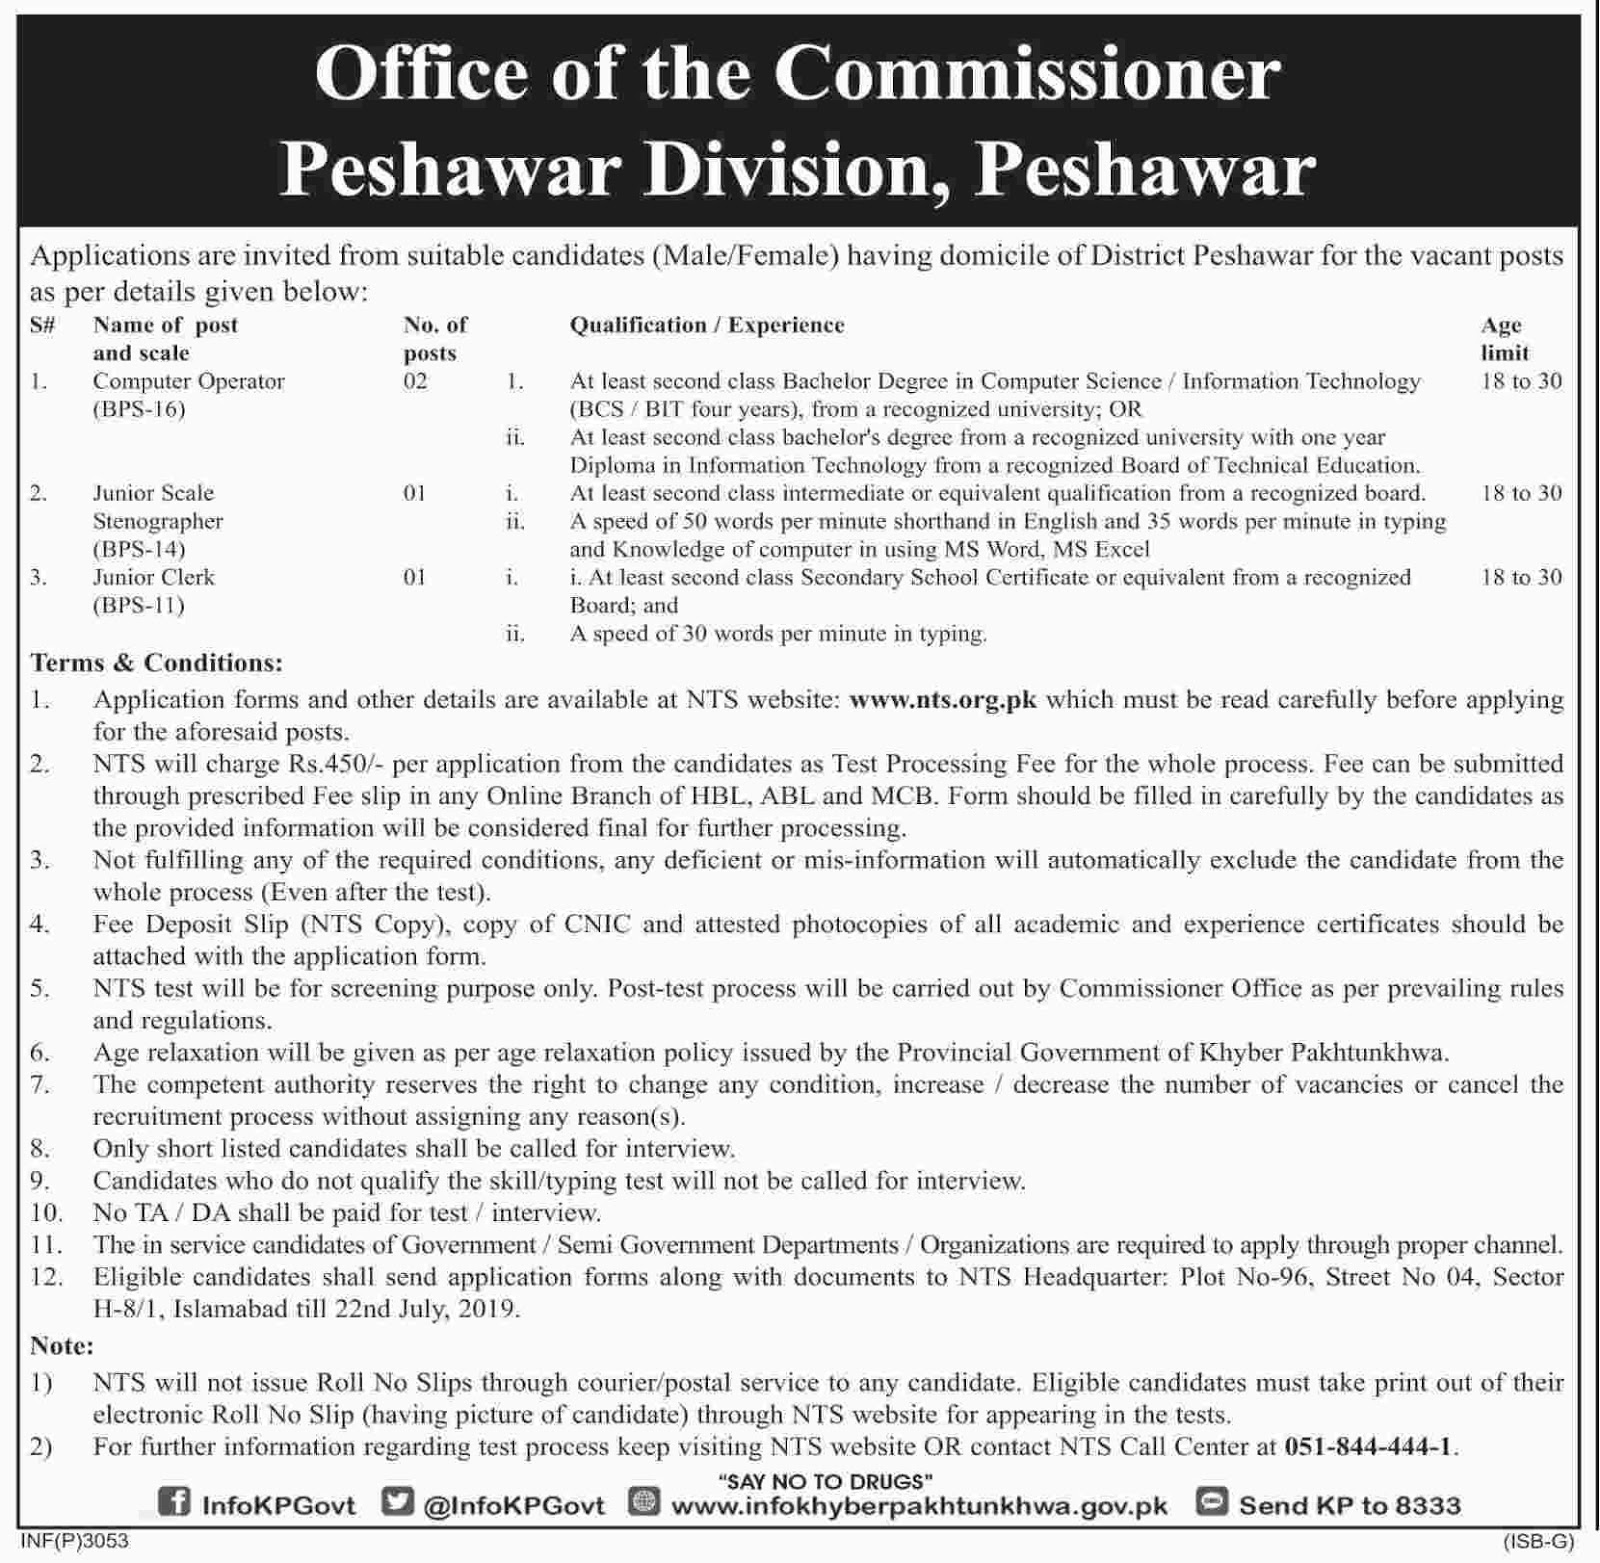 Jobs in Commissioner's Office in Peshawar Division 09 July 2019